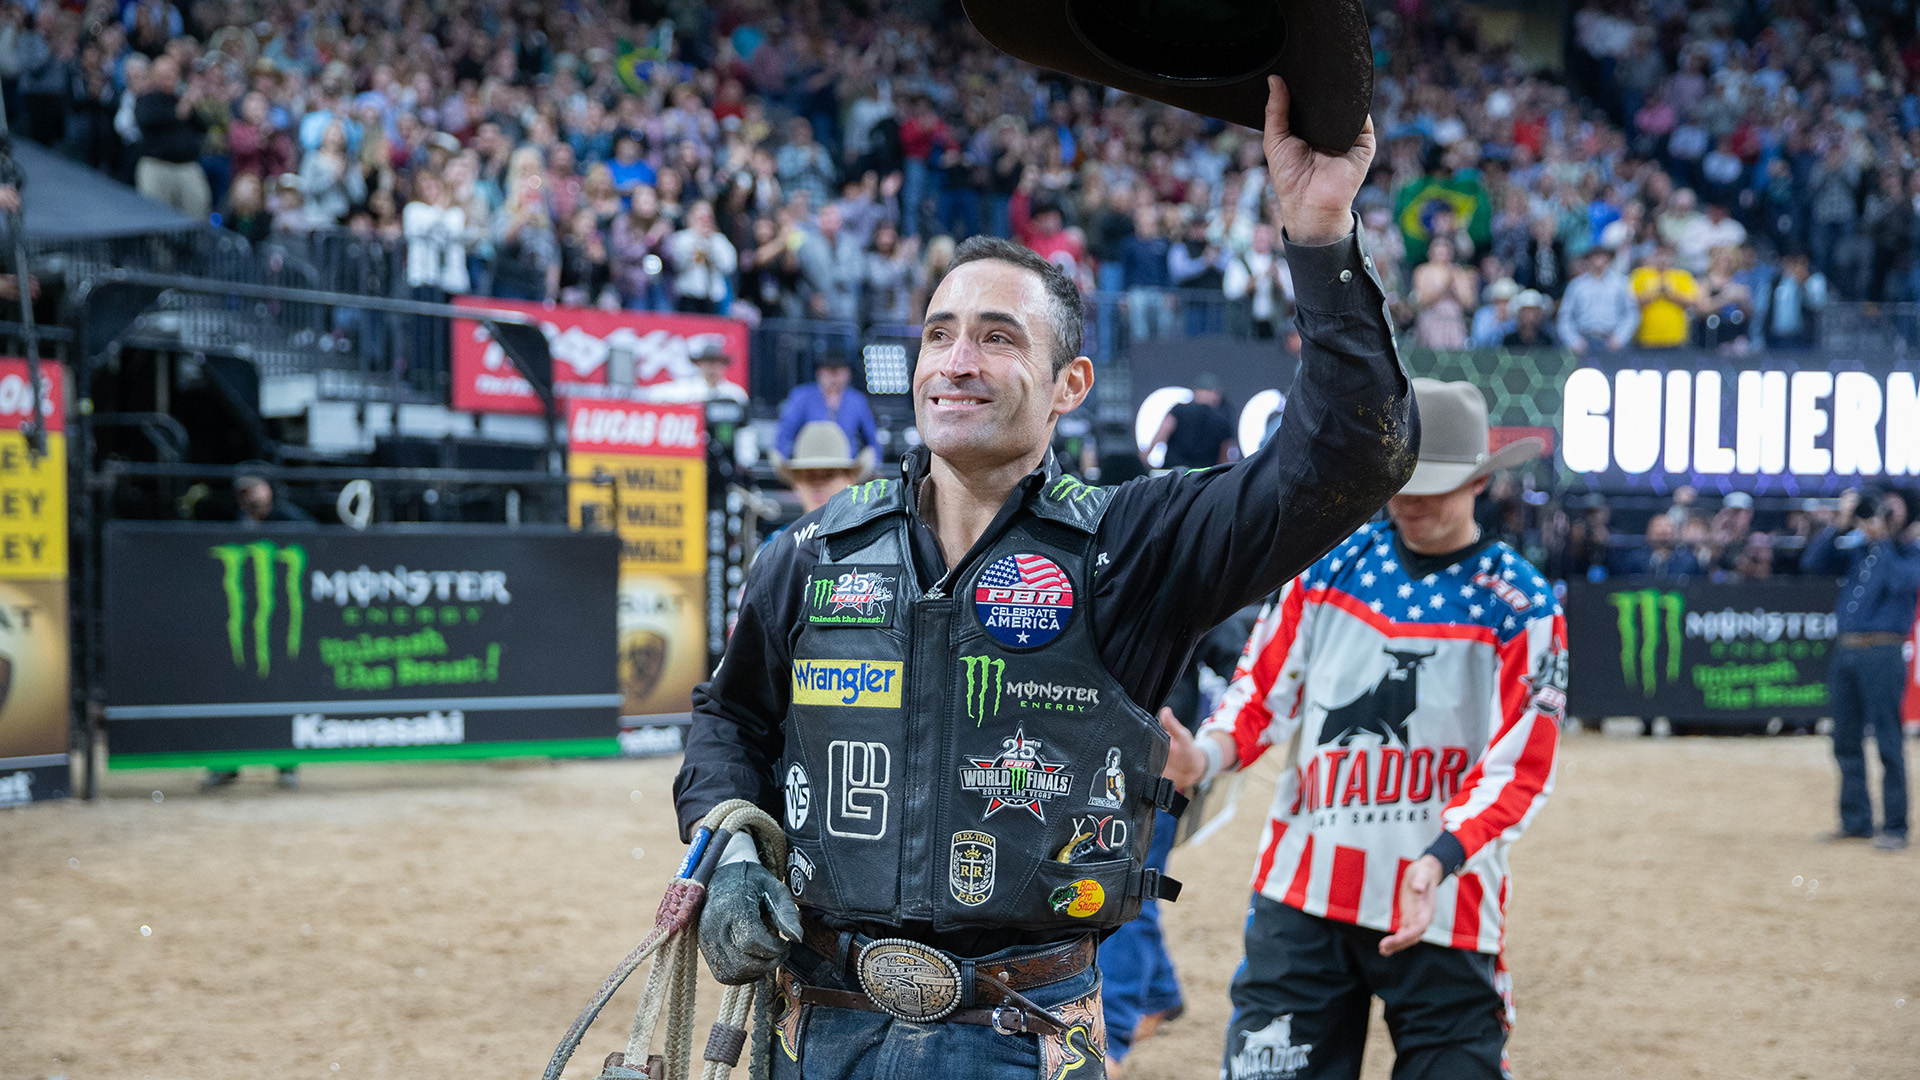 Guilherme Marchi to be inducted into Ring of Honor at 2019 PBR Heroes & Legends celebration